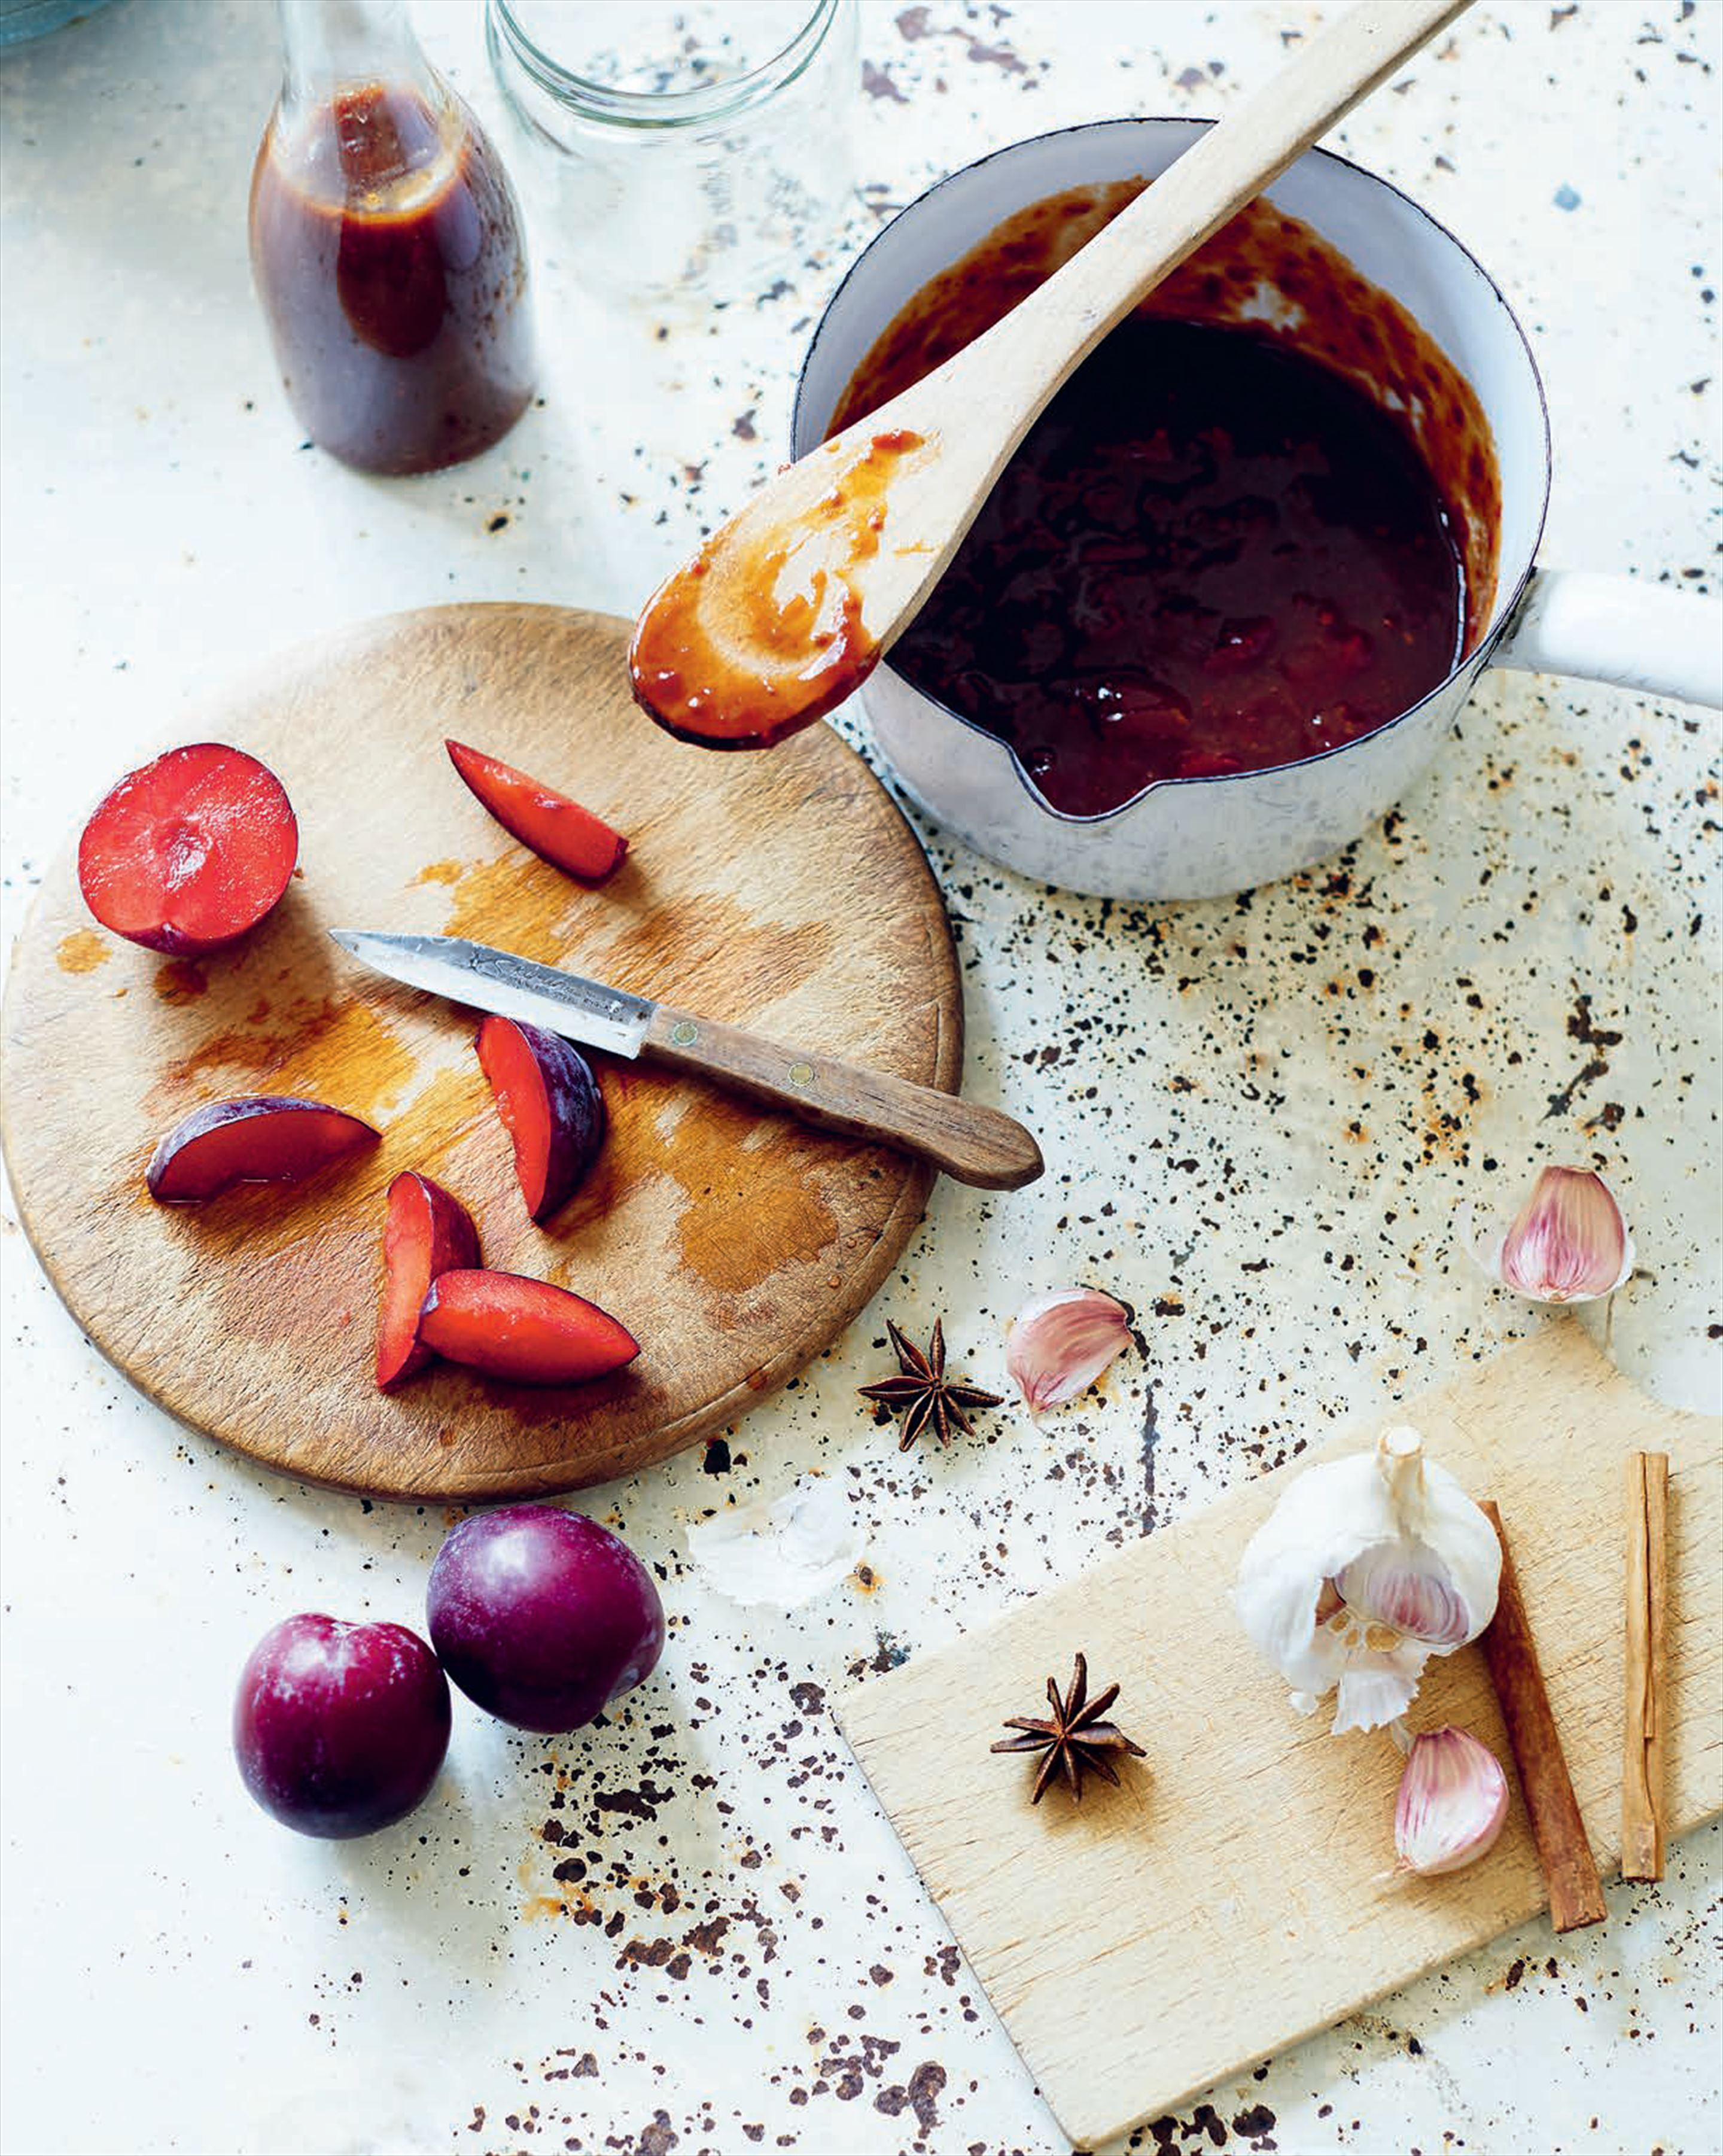 Plum ketchup to serve with meat or cheese